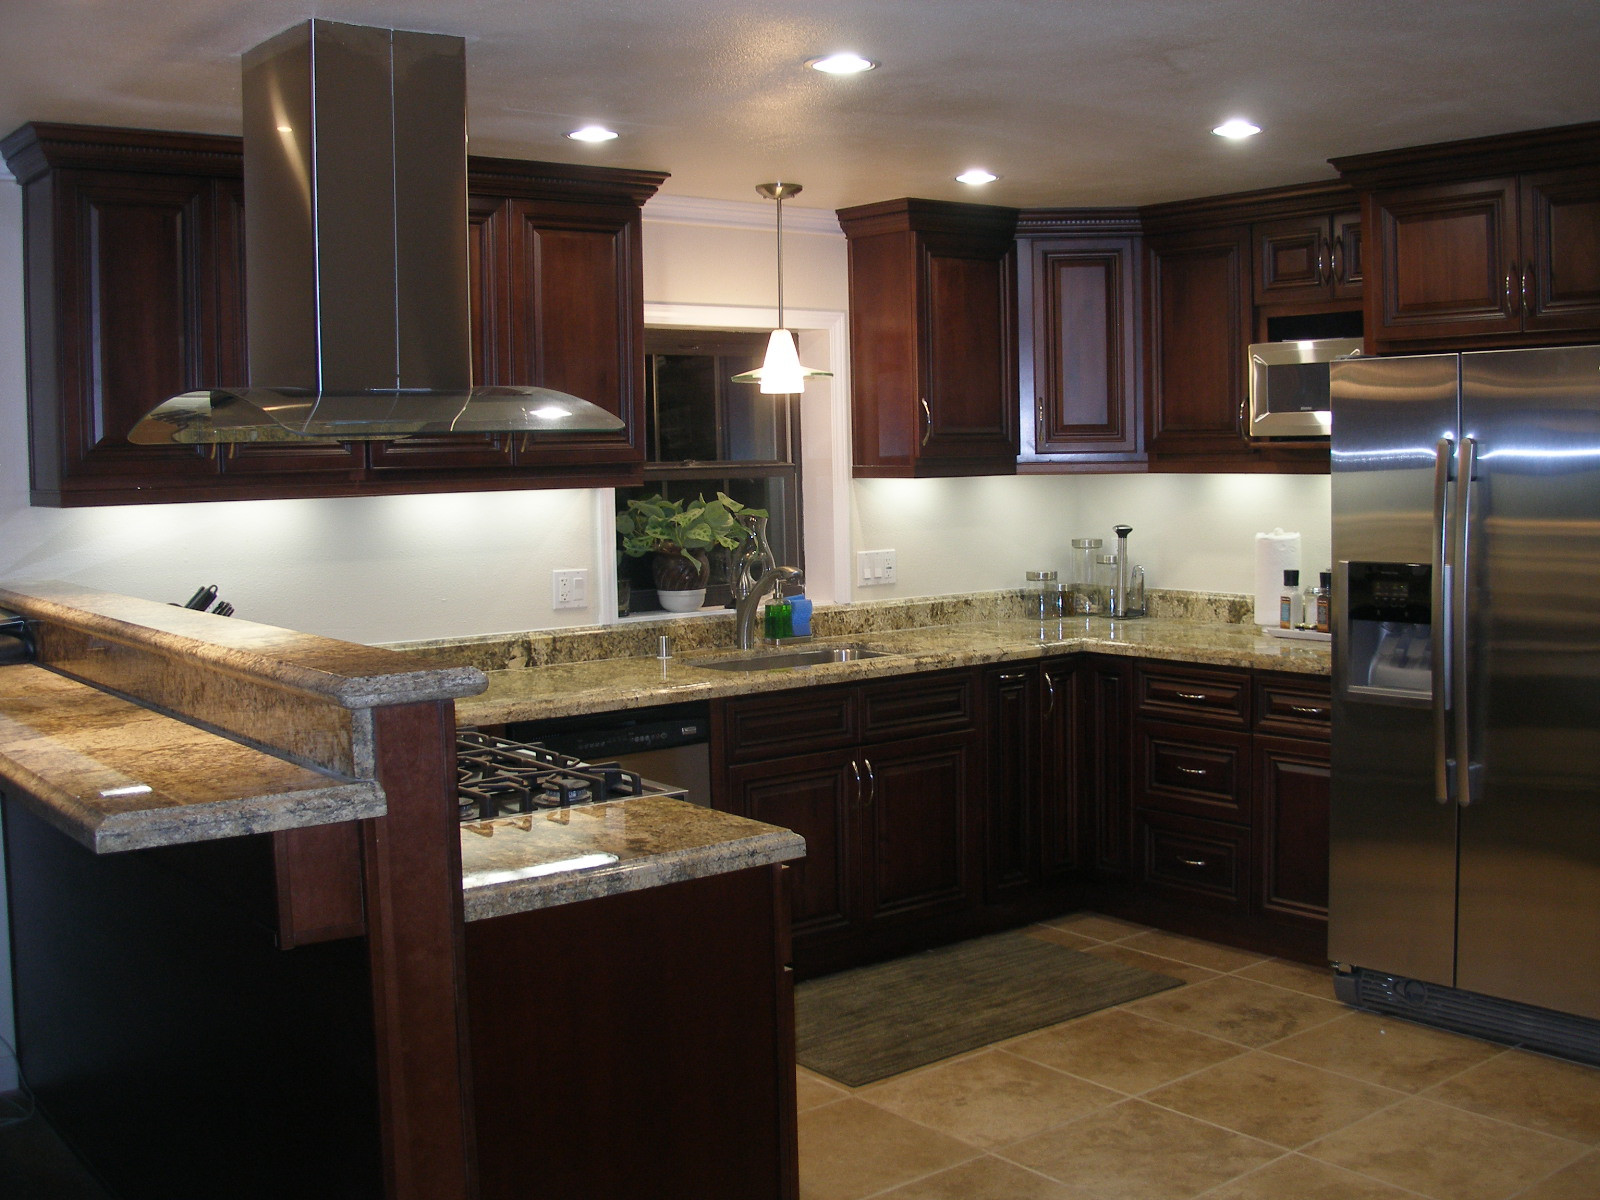 mobile home kitchen remodel rustic hardware free kleo wagenaardentistry com bay easy construction